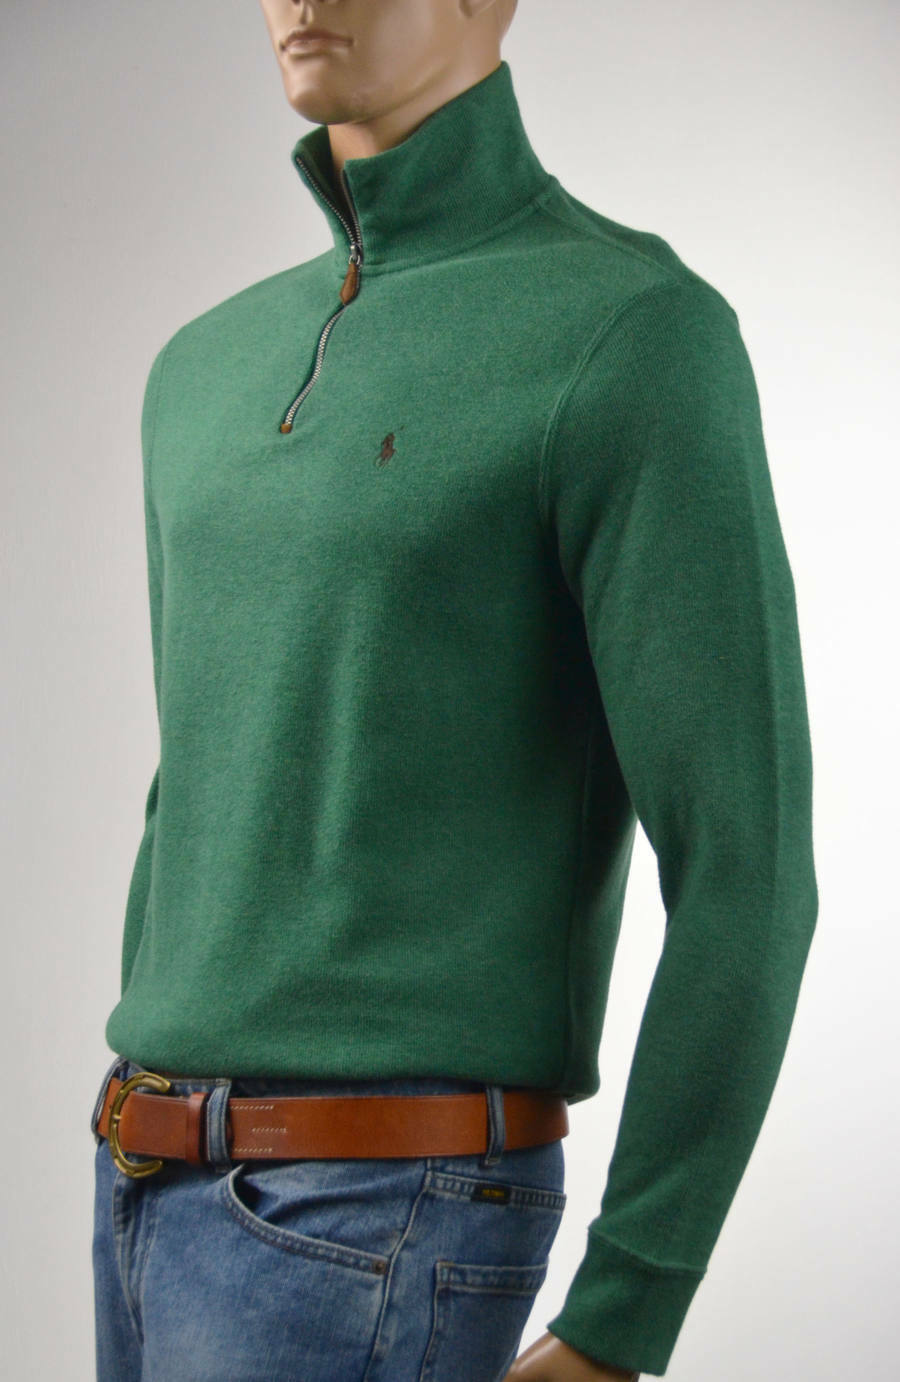 Ralph Lauren French-Ribbed Green Half-Zip Sweater Brown Pony -Small-NWT